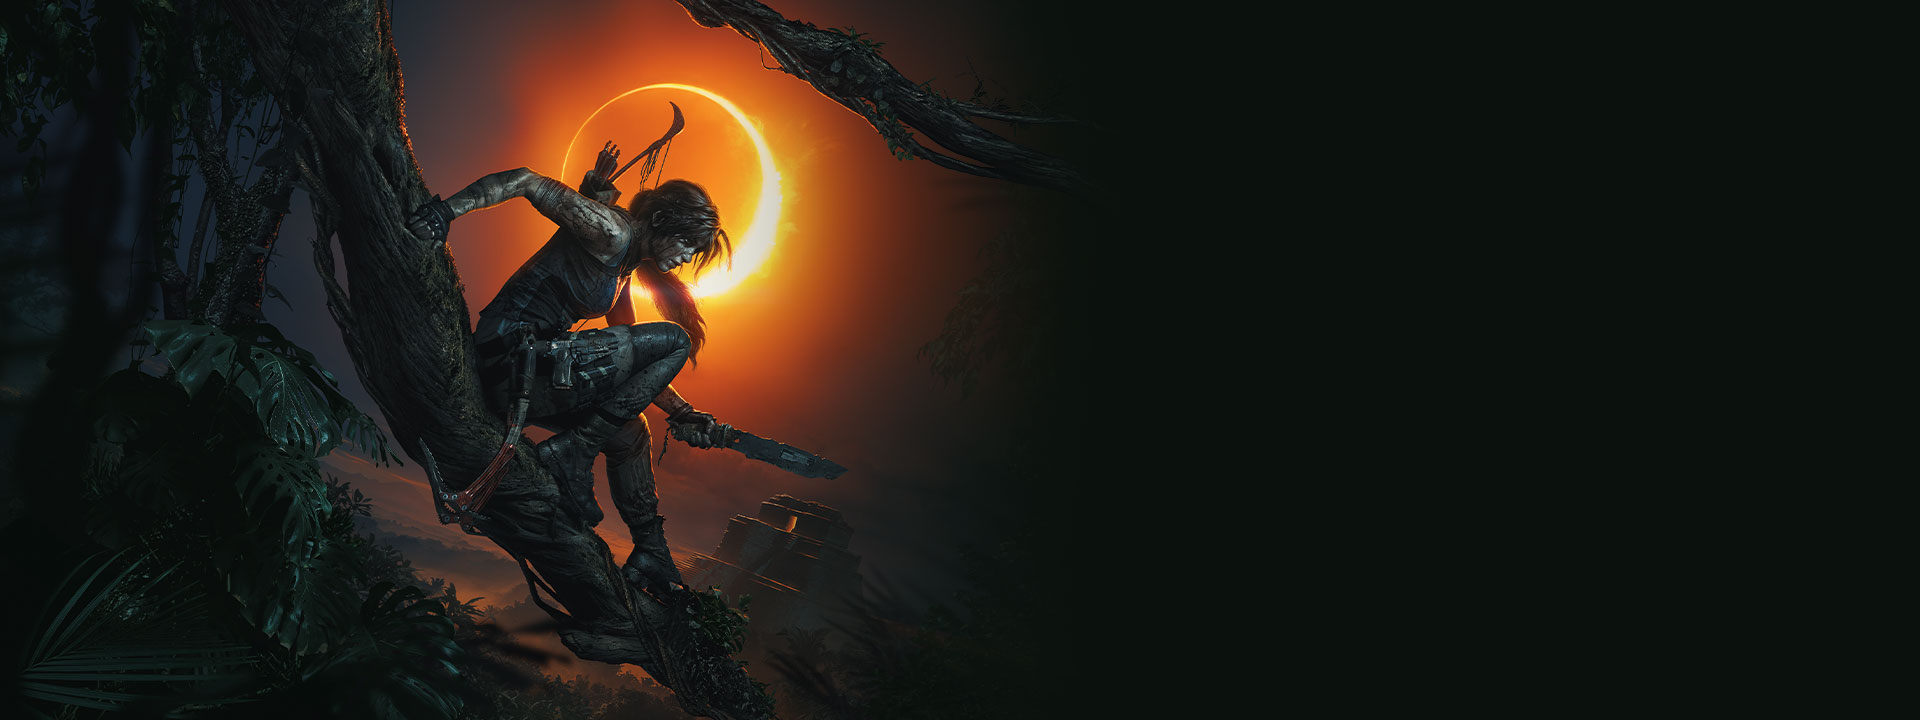 Lara Croft sits on a tree branch while holding a knife with an Eclipse in the background